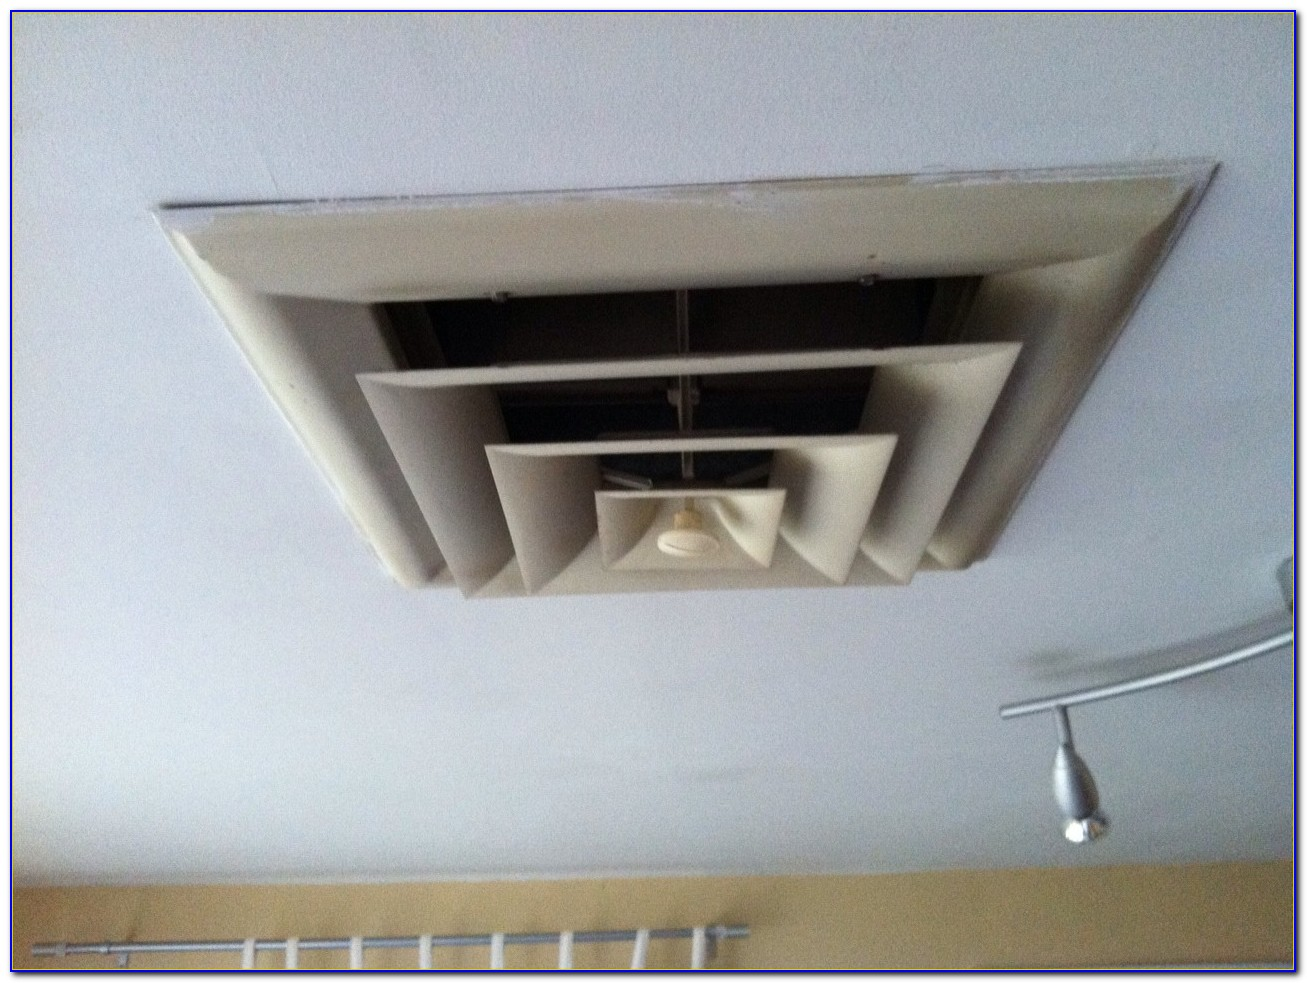 Ceiling Air Diffuser Covers